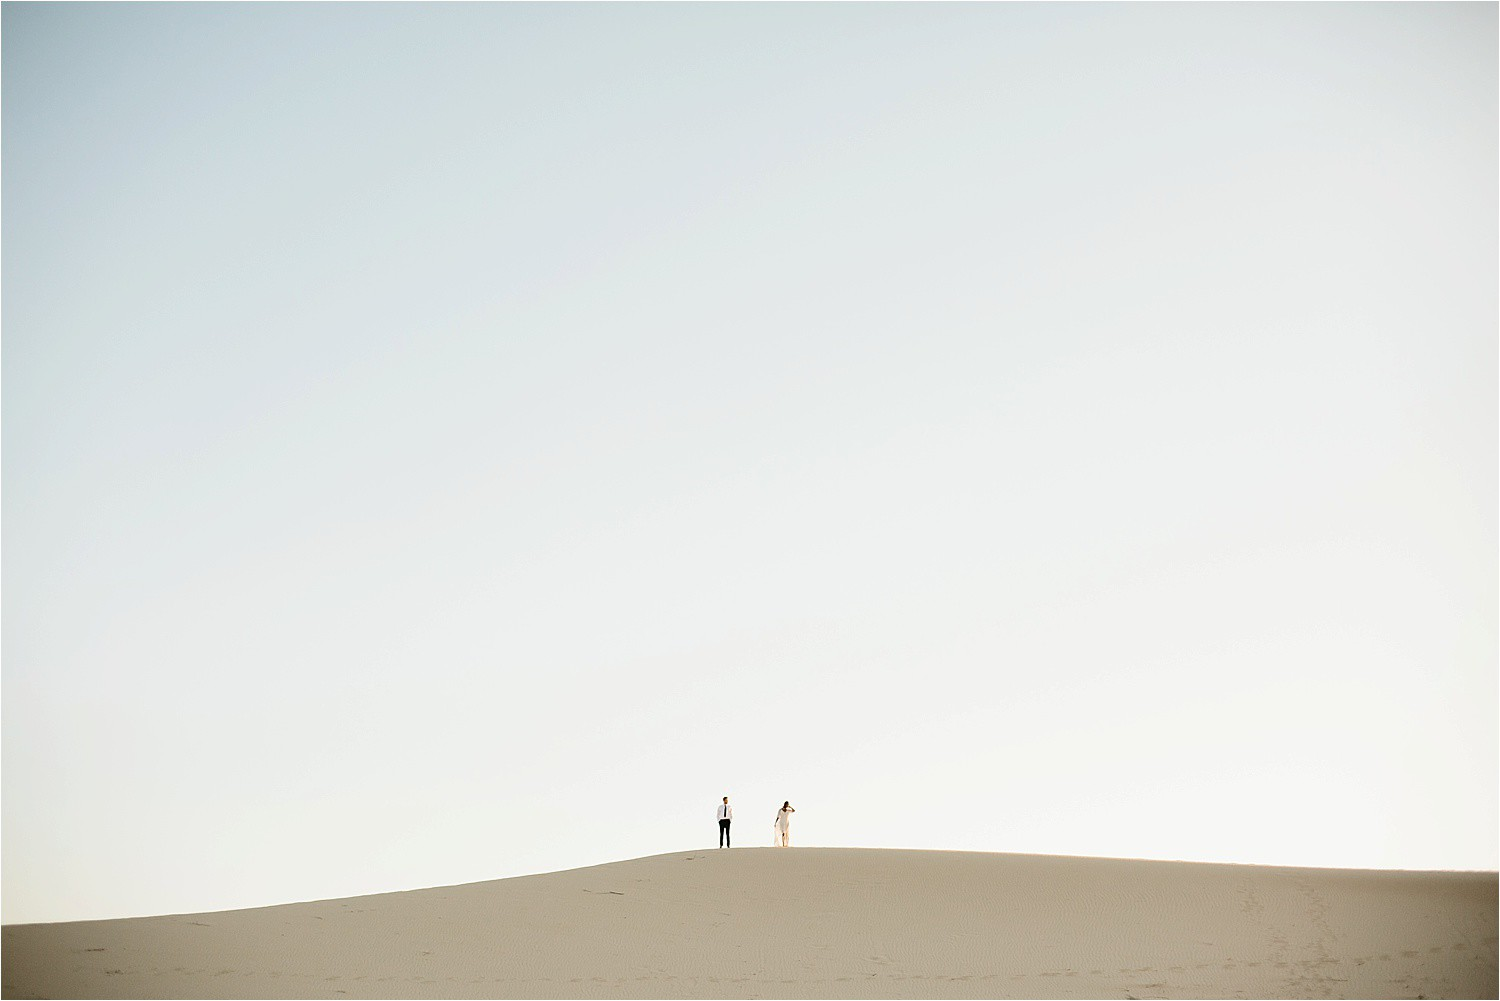 Lauren + Jacob __ a monahans sand dunes engagement session at sunrise by North Texas Wedding Photographer, Rachel Meagan Photography __ 28